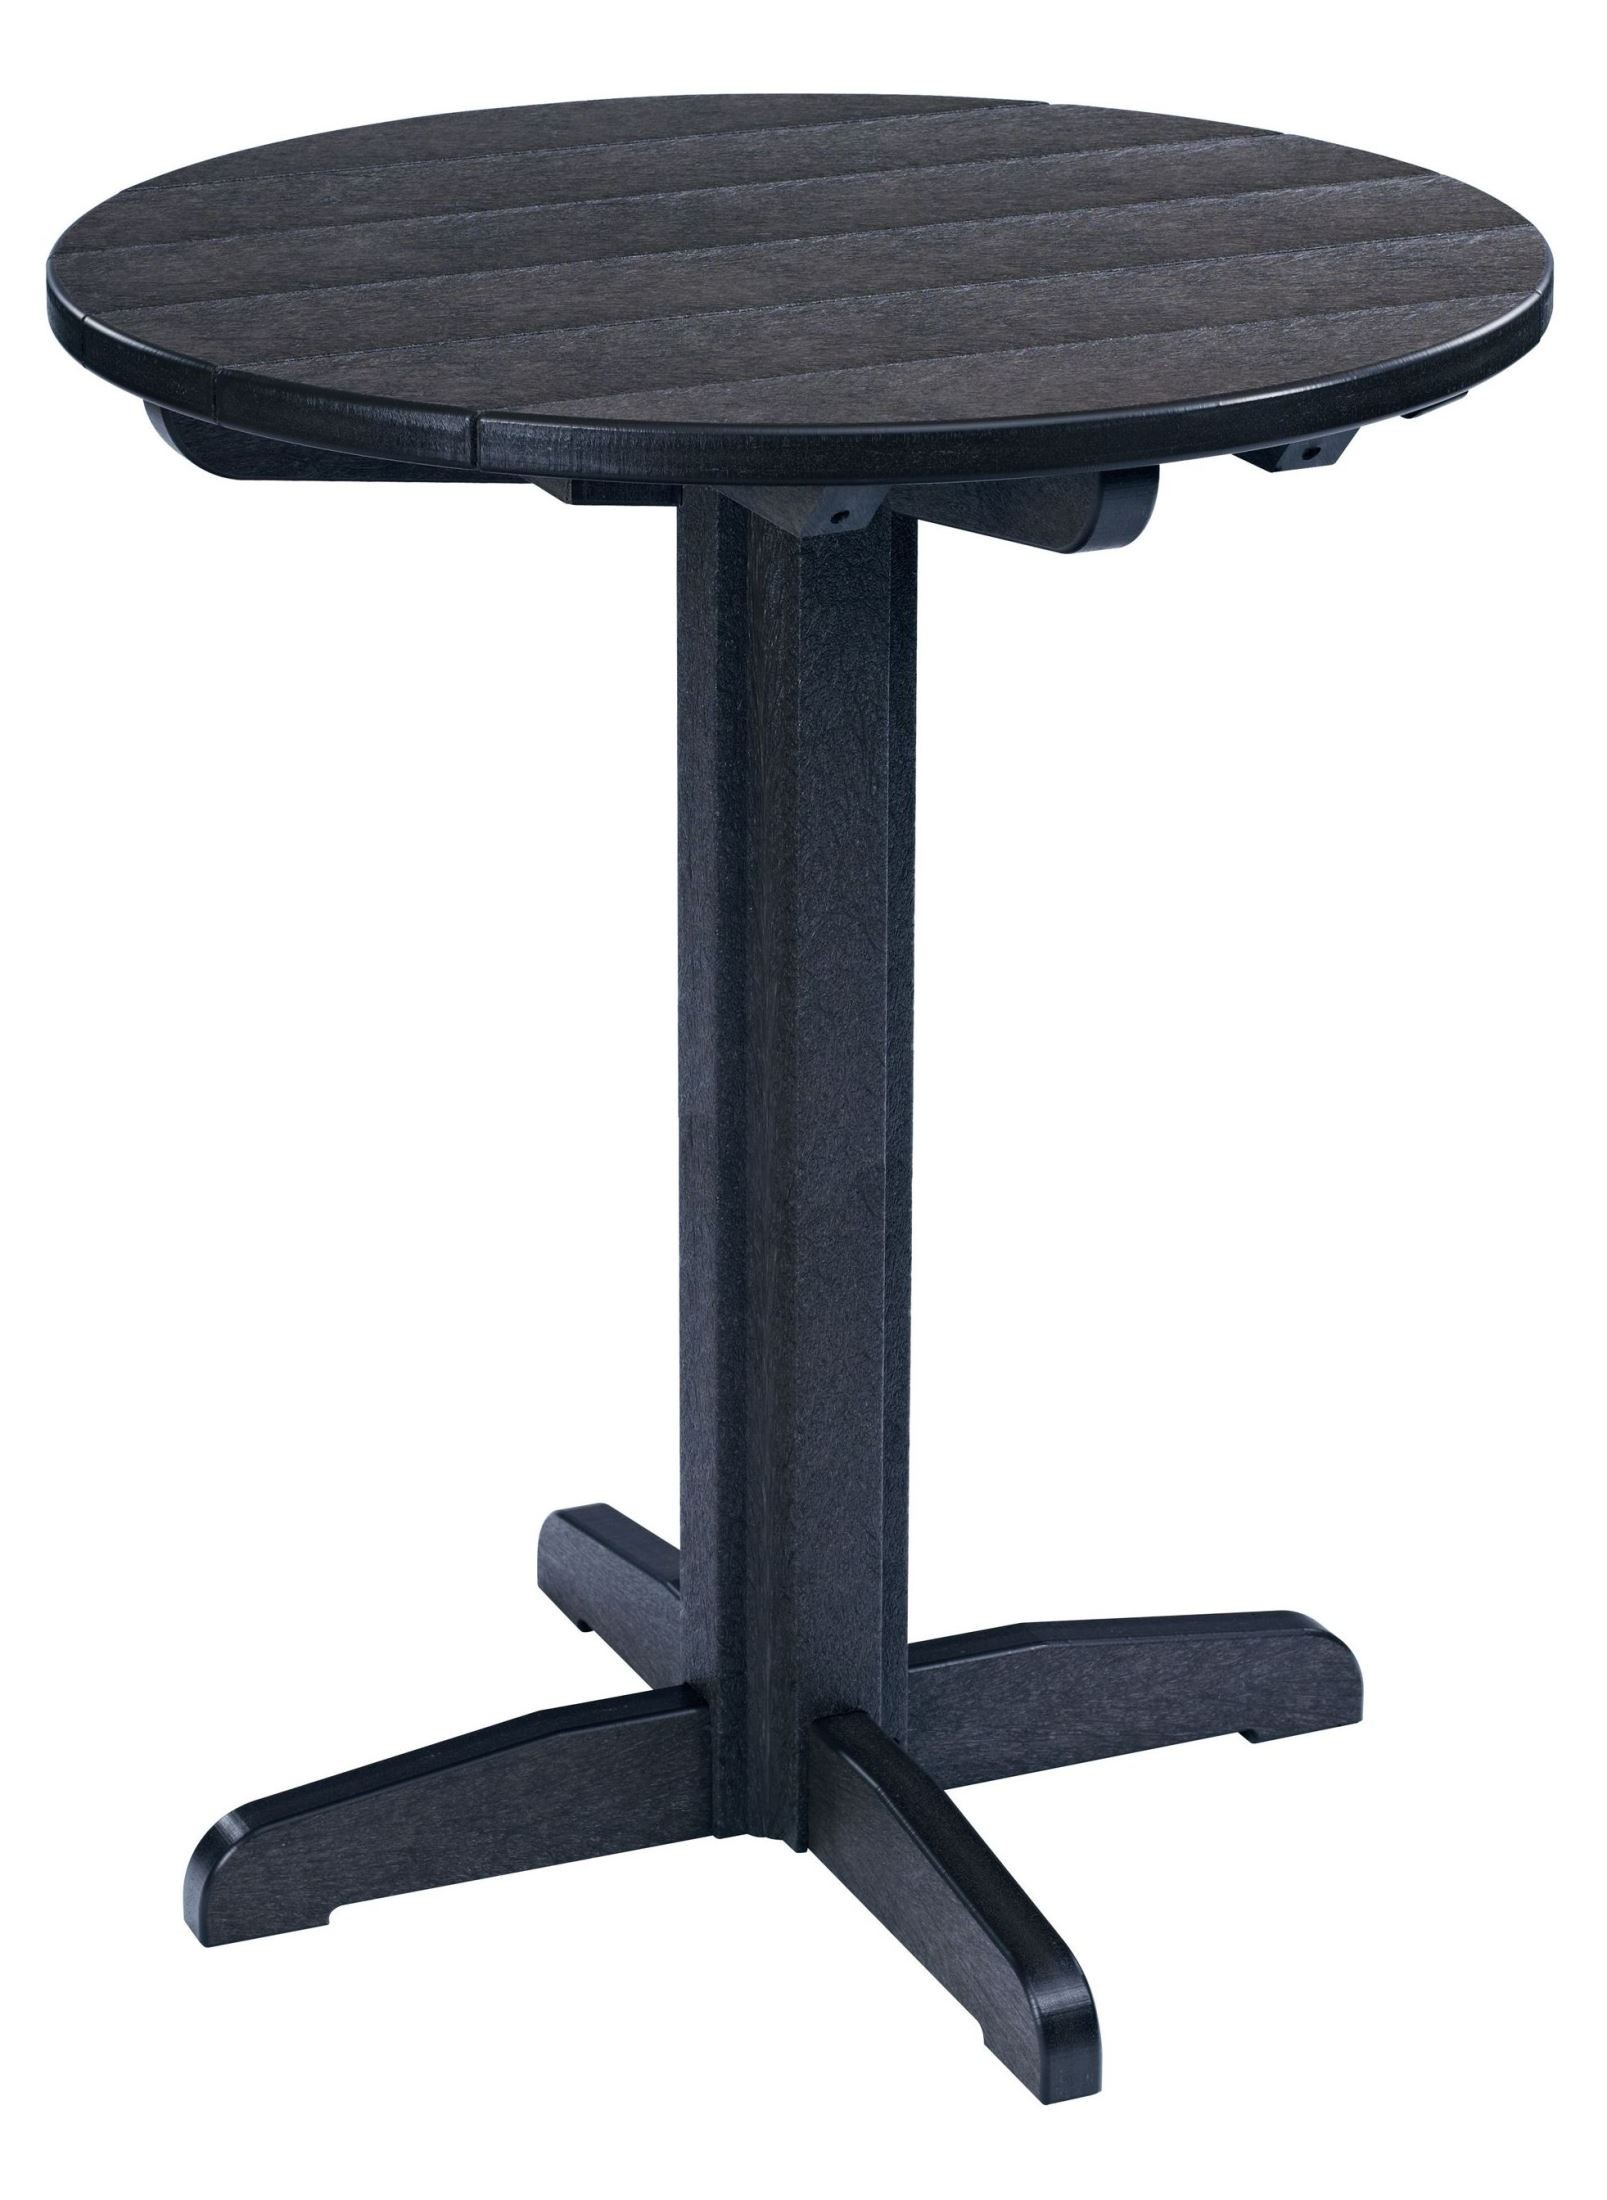 Generations Black 32quot Round Pub Height Pedestal Table from  : tbt1314tb13tt0114 from colemanfurniture.com size 1607 x 2200 jpeg 295kB